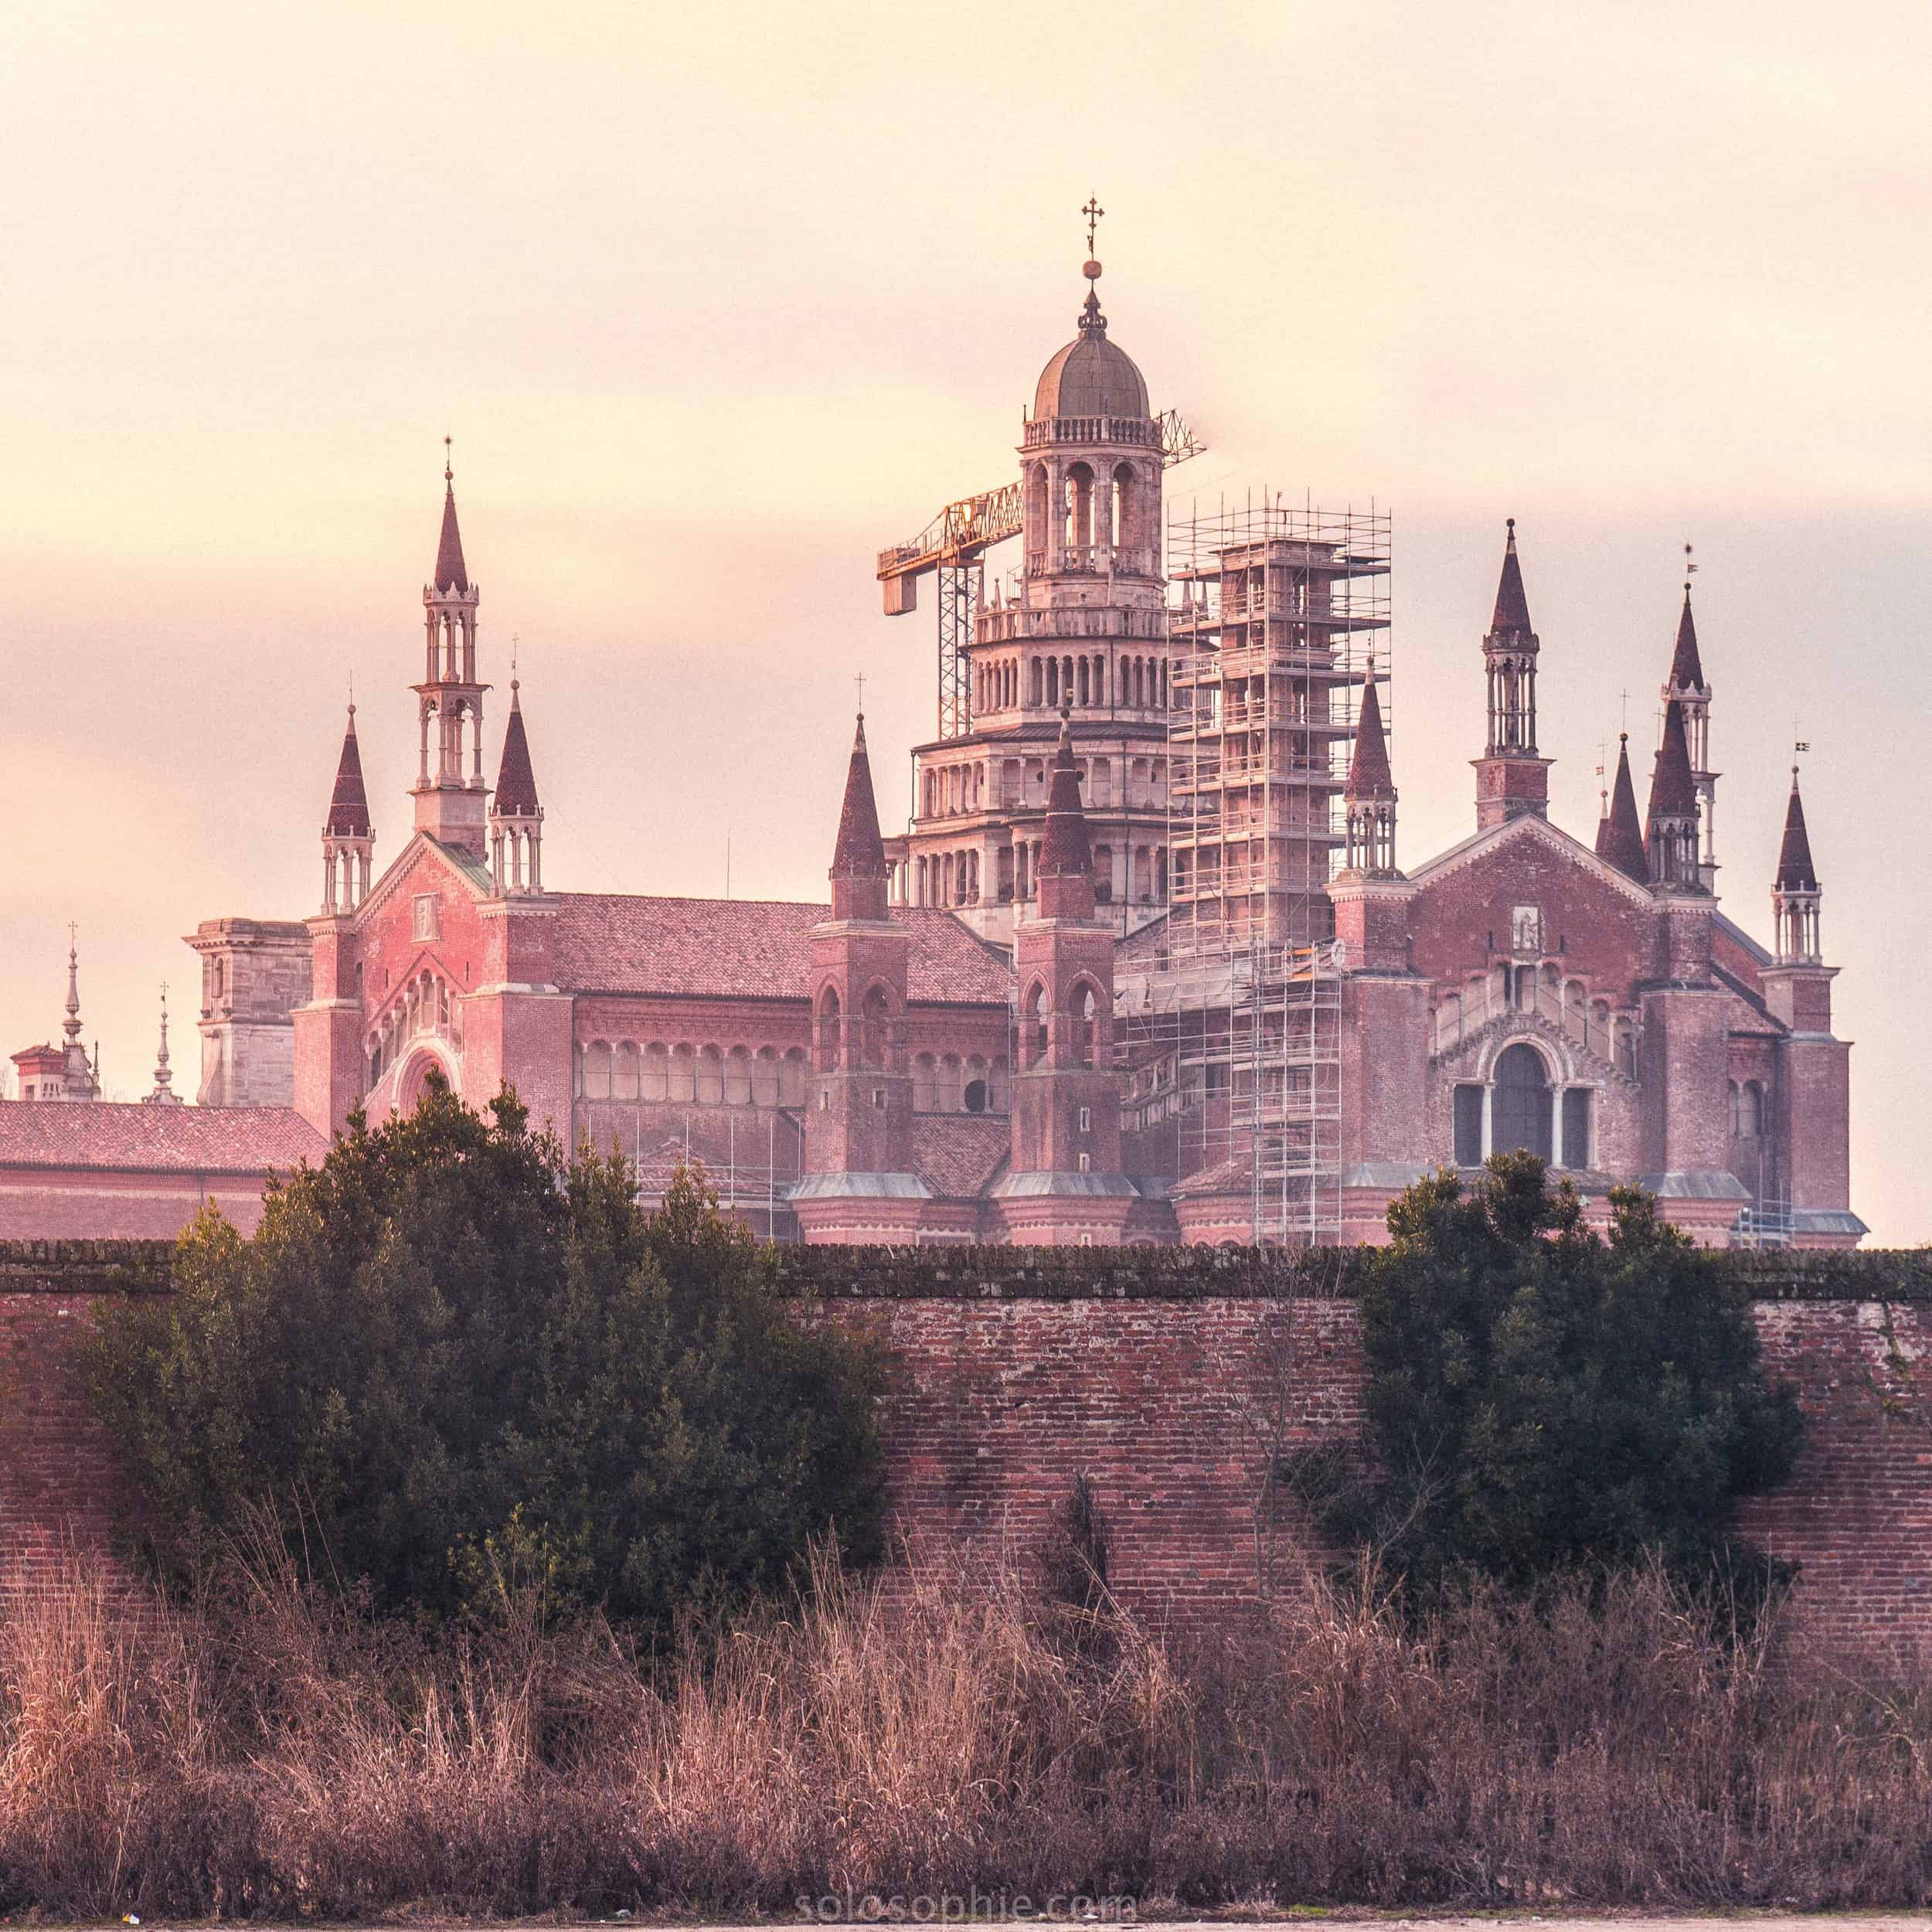 Pavia Guide: Best things to do in Pavia, a beautiful university town in the Lombardy region of Italy